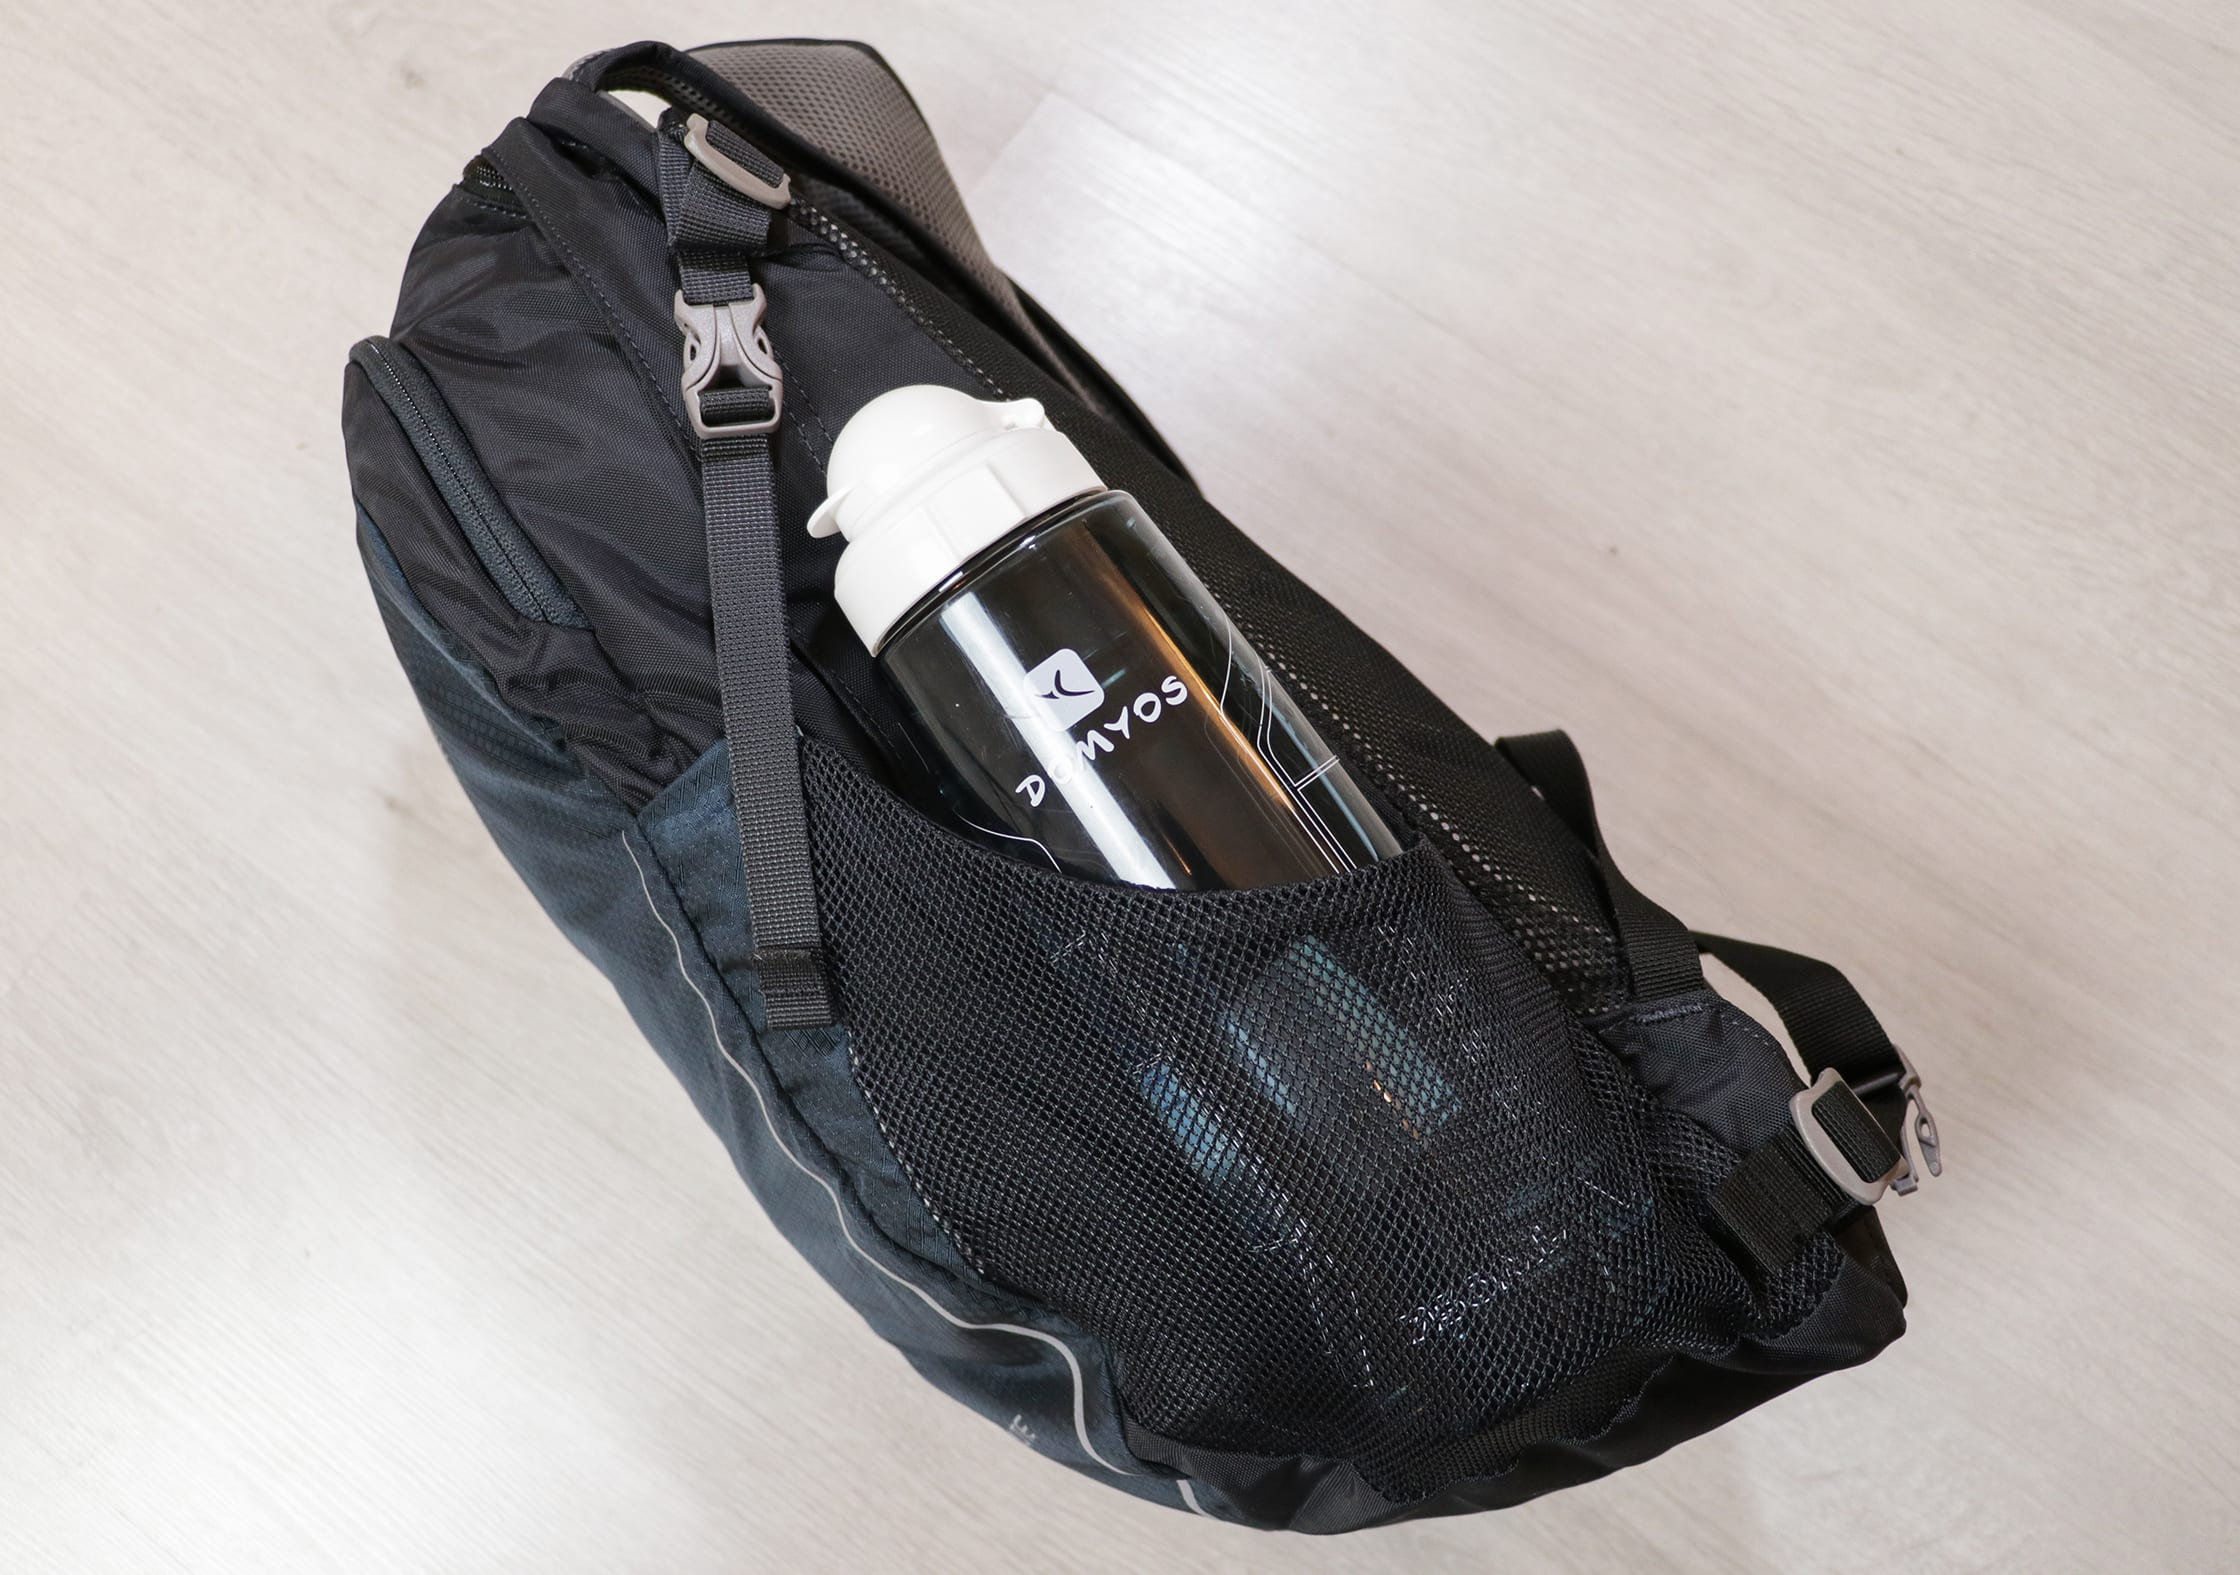 Water Bottle Pocket & Compression Strap On The Osprey Daylite